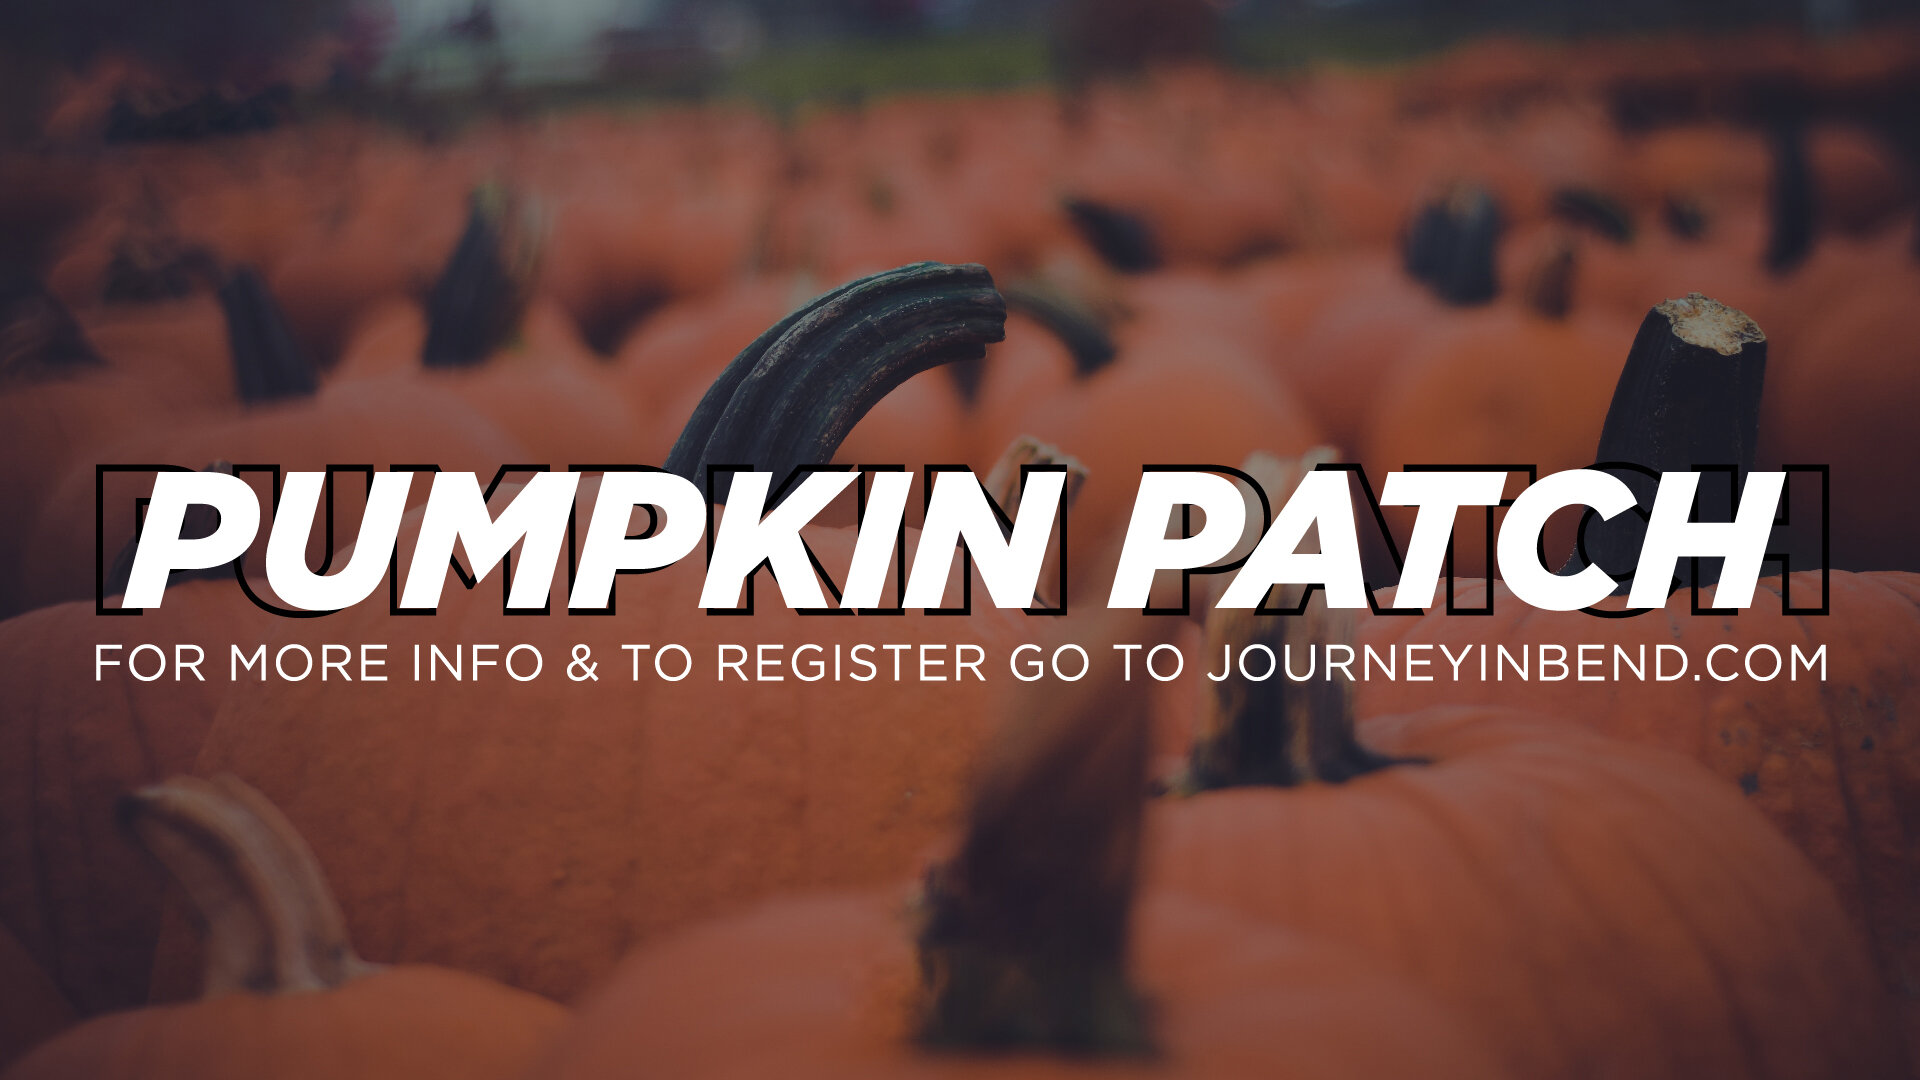 PUMPKIN-PATCH-HS-01.jpg